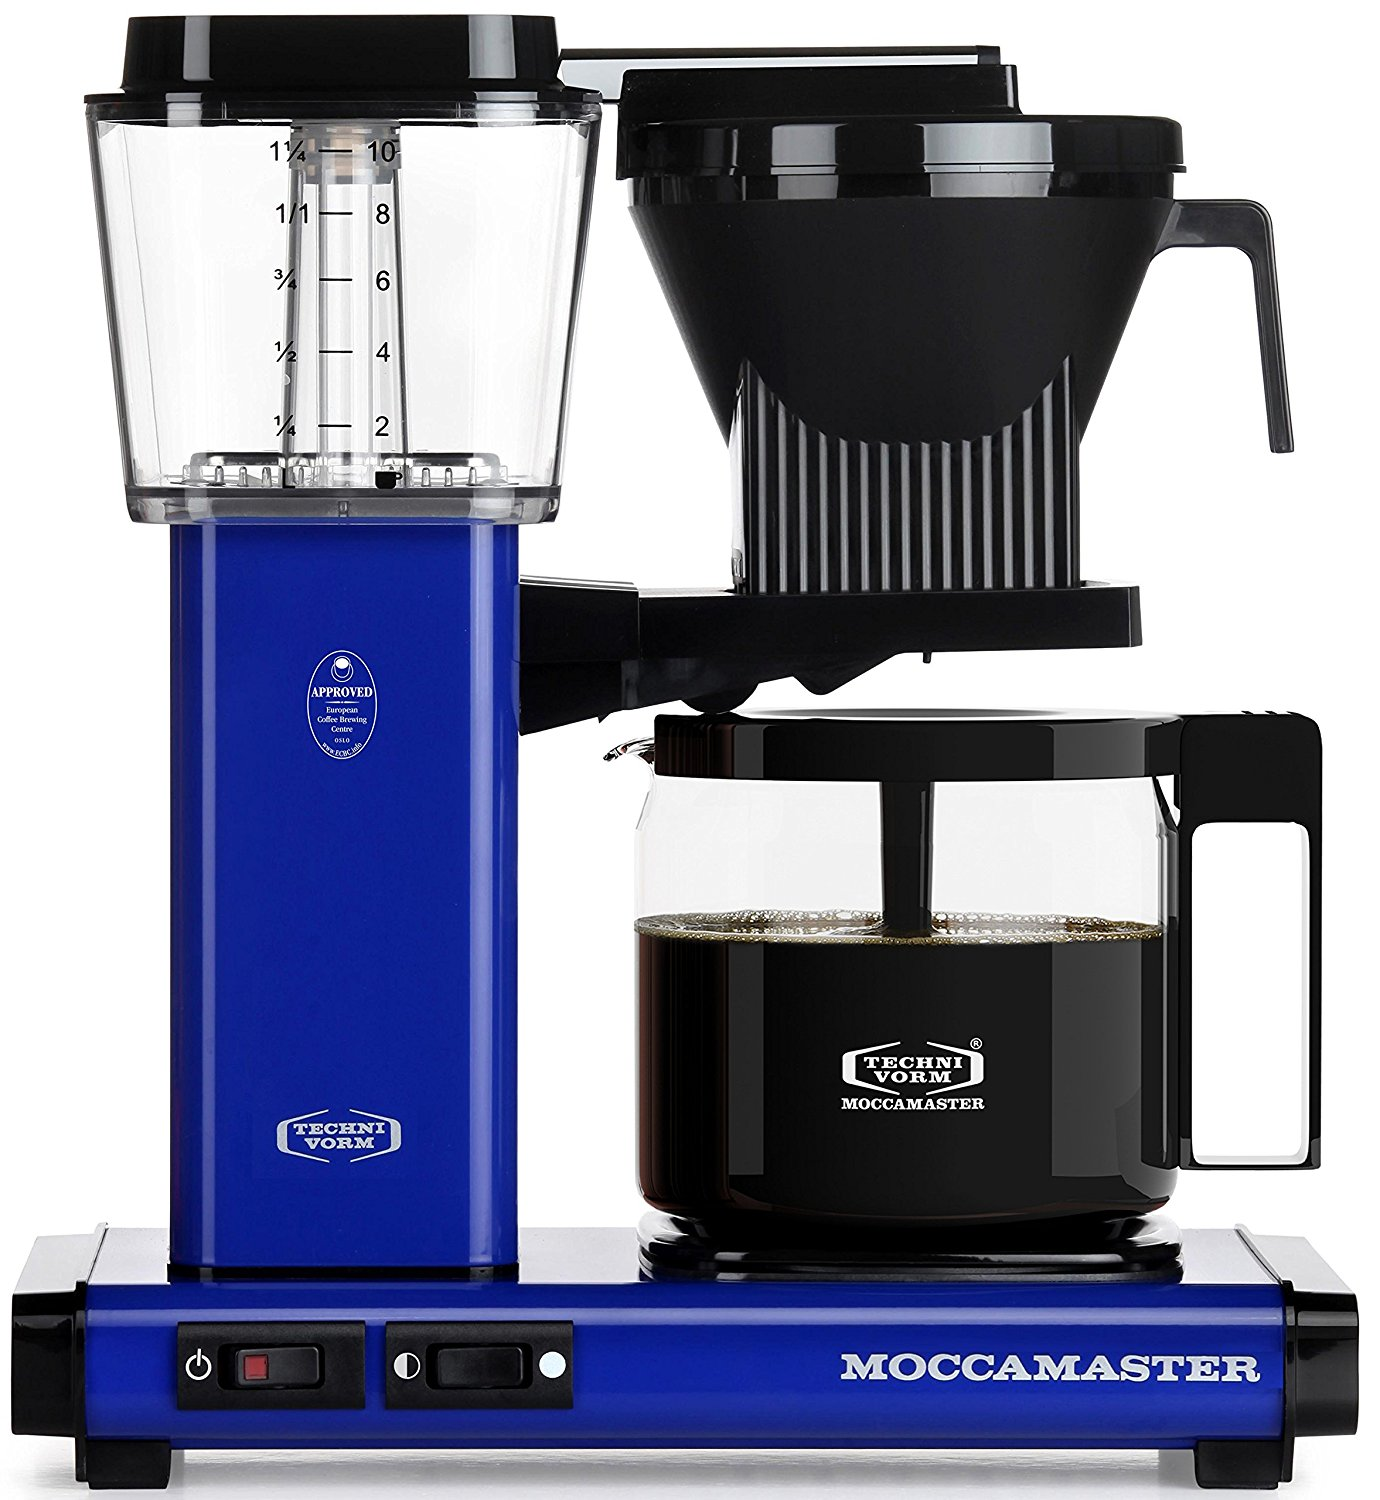 Moccamaster KBG 741 10-Cup Coffee Brewer with Glass Carafe Best Price - Moccamaster KBG 741 10 ...